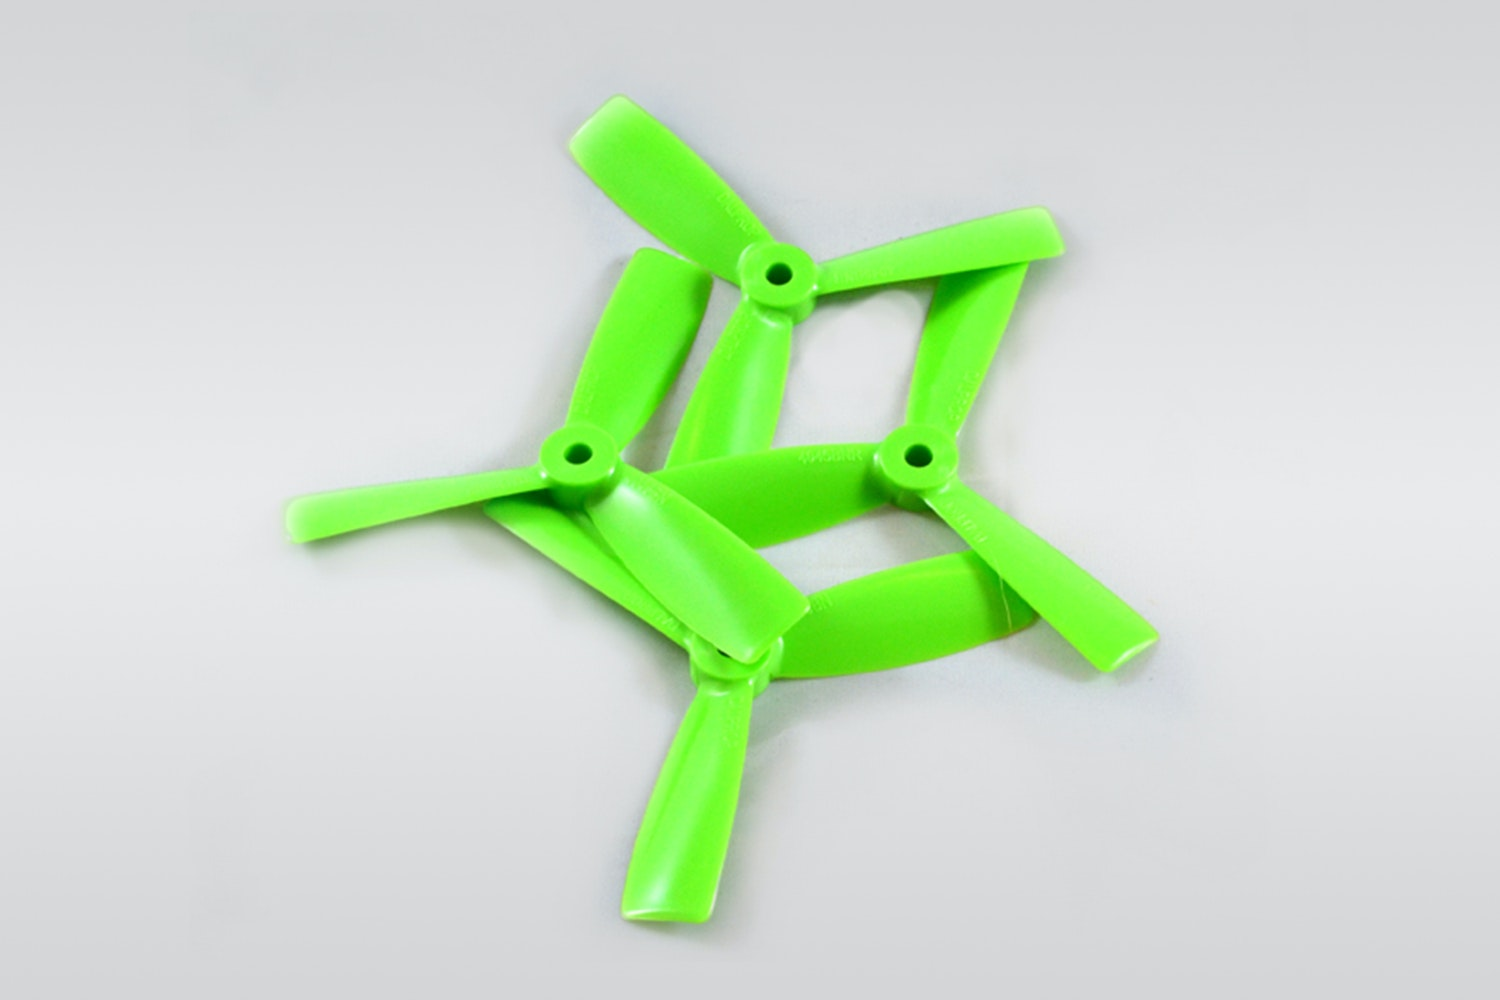 Extra Set of DALPROP 4045x3 Propellers 2CW & 2CCW (+ $4)